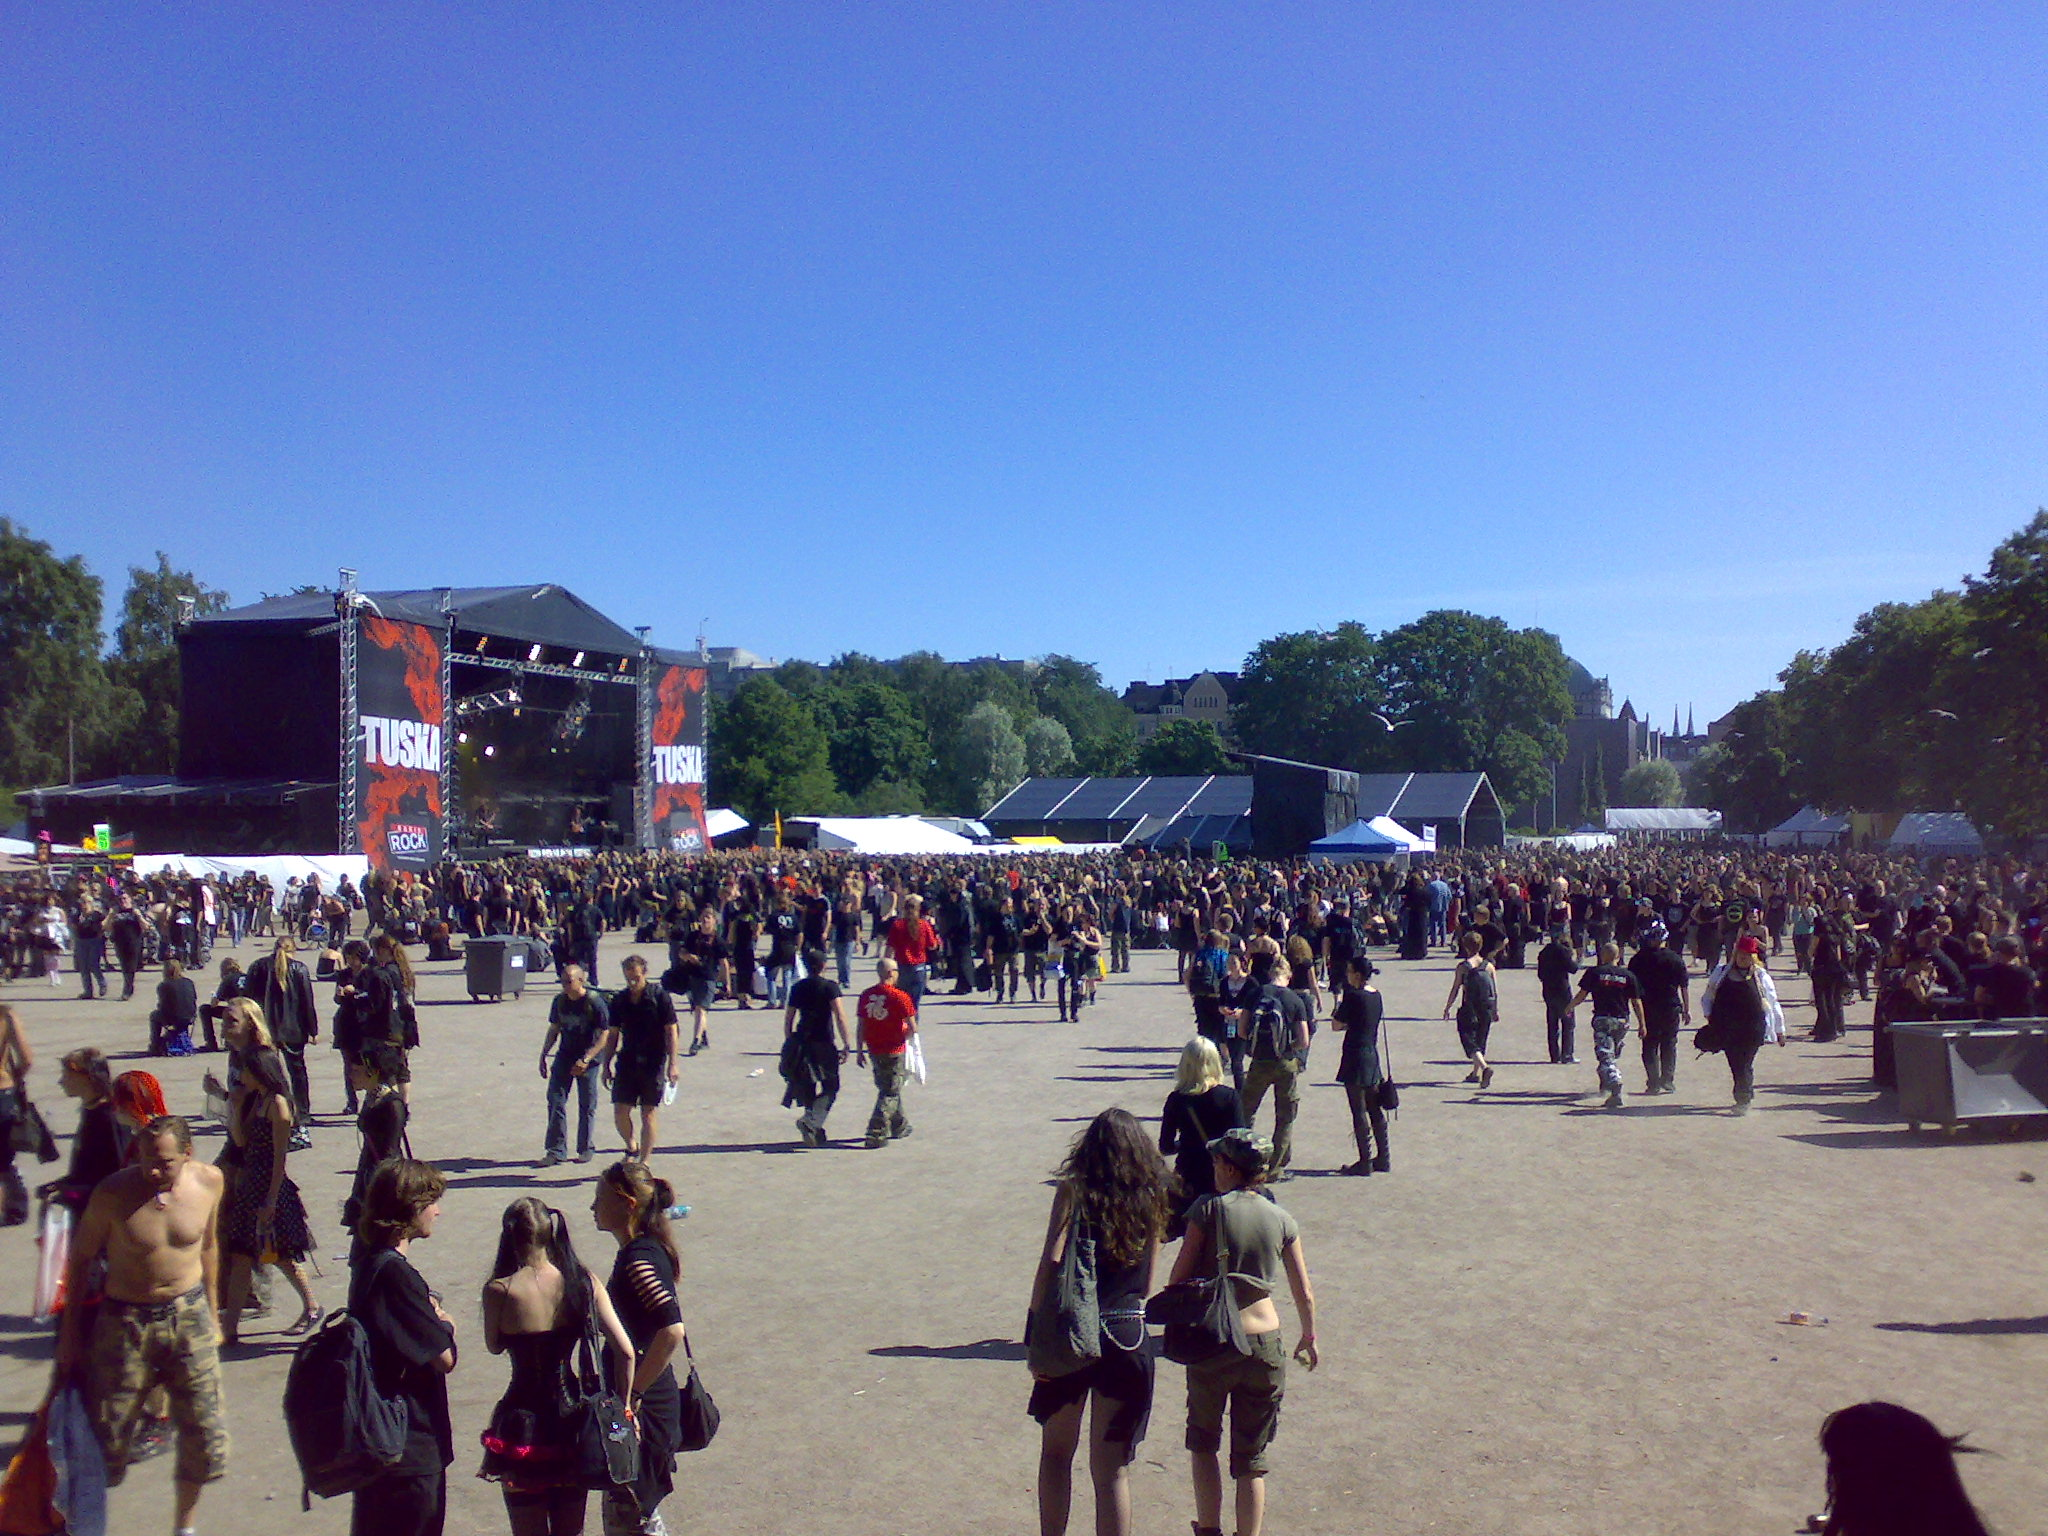 File:Tuska Open Air Metal Festival 2007 main stage area.jpg - Wikimedia Commons